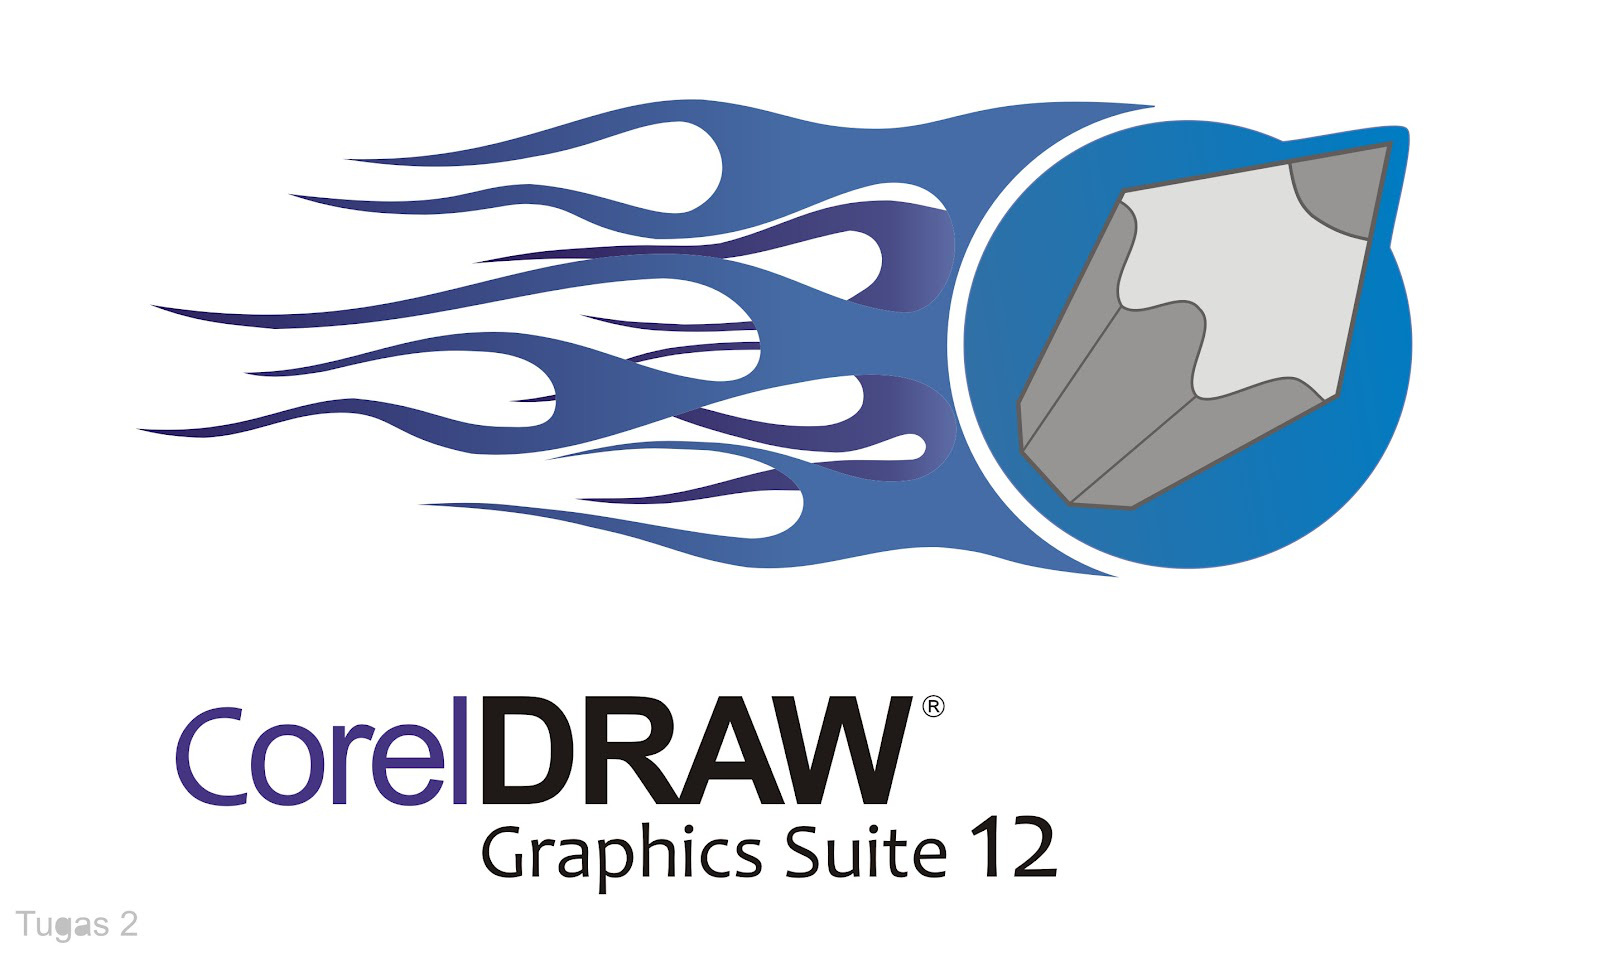 Corel draw version - Corel Draw 12 Graphics Suite With Serial Full Version